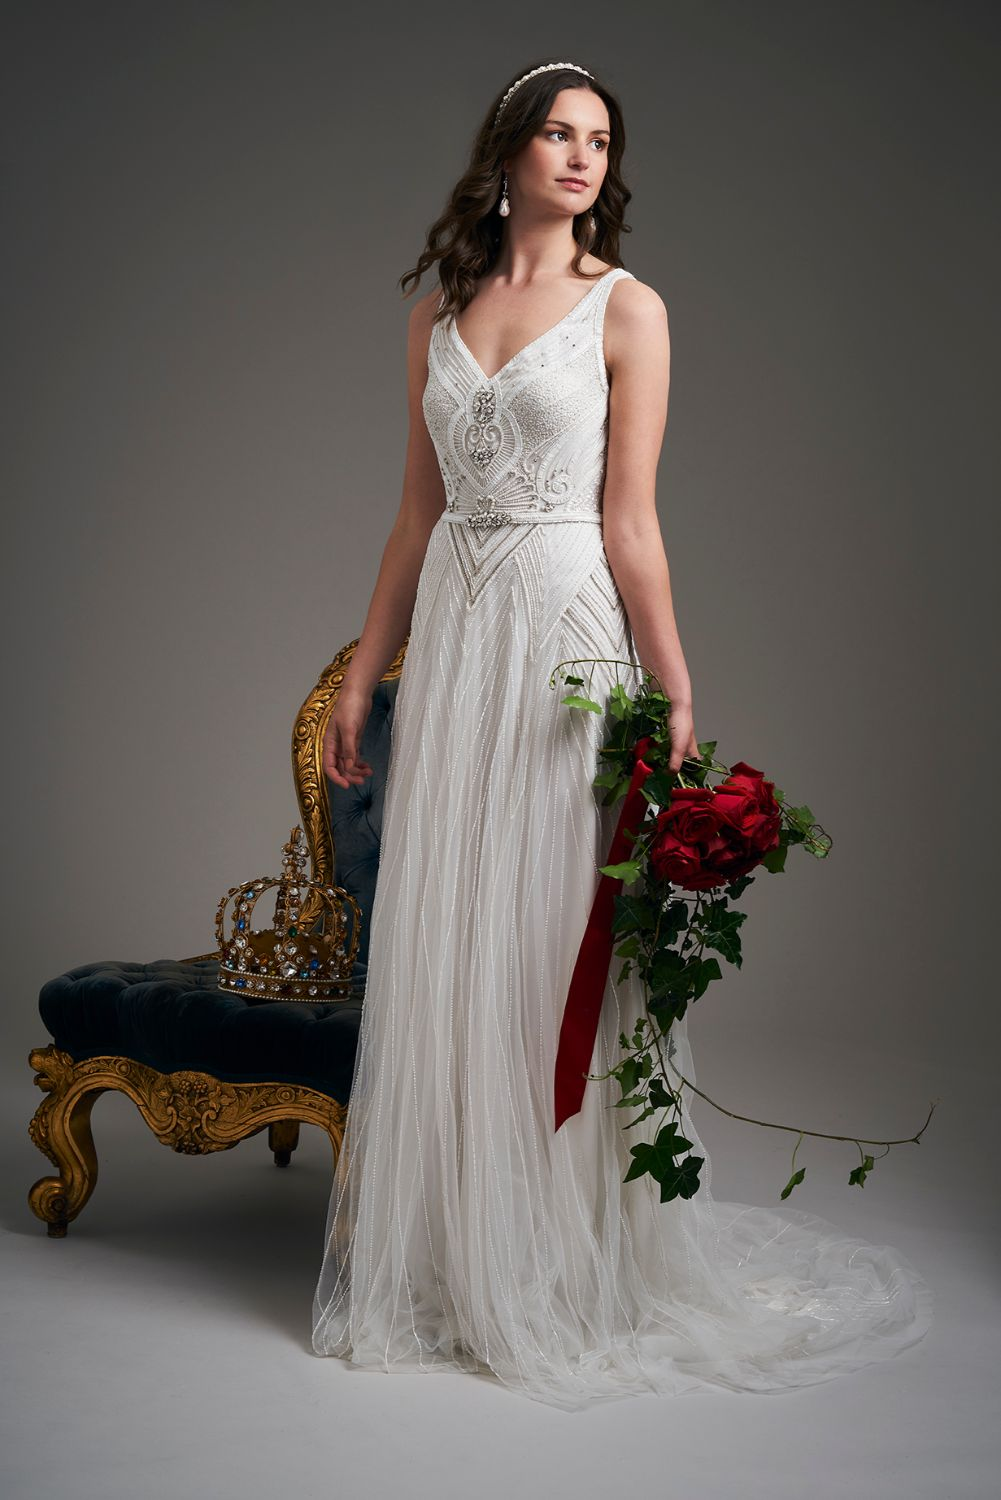 Eliza Jane Howell Tallulah Wedding Dress 2020 front